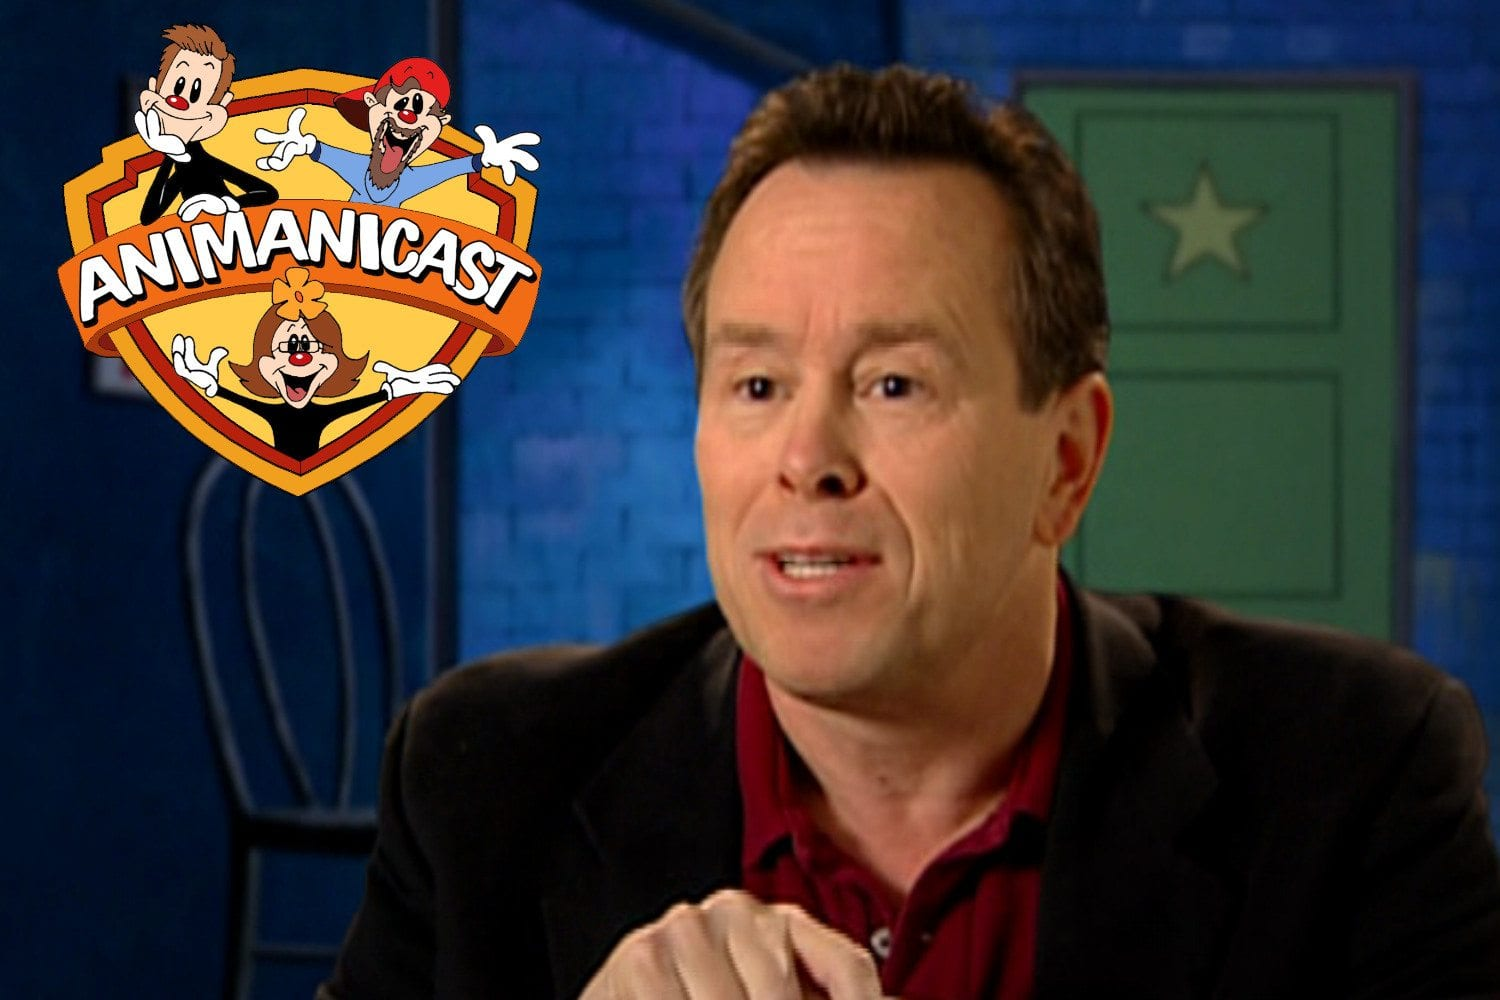 Animanicast #60a: A Discussion with Animaniacs Senior Producer and Creator Tom Ruegger- Part One